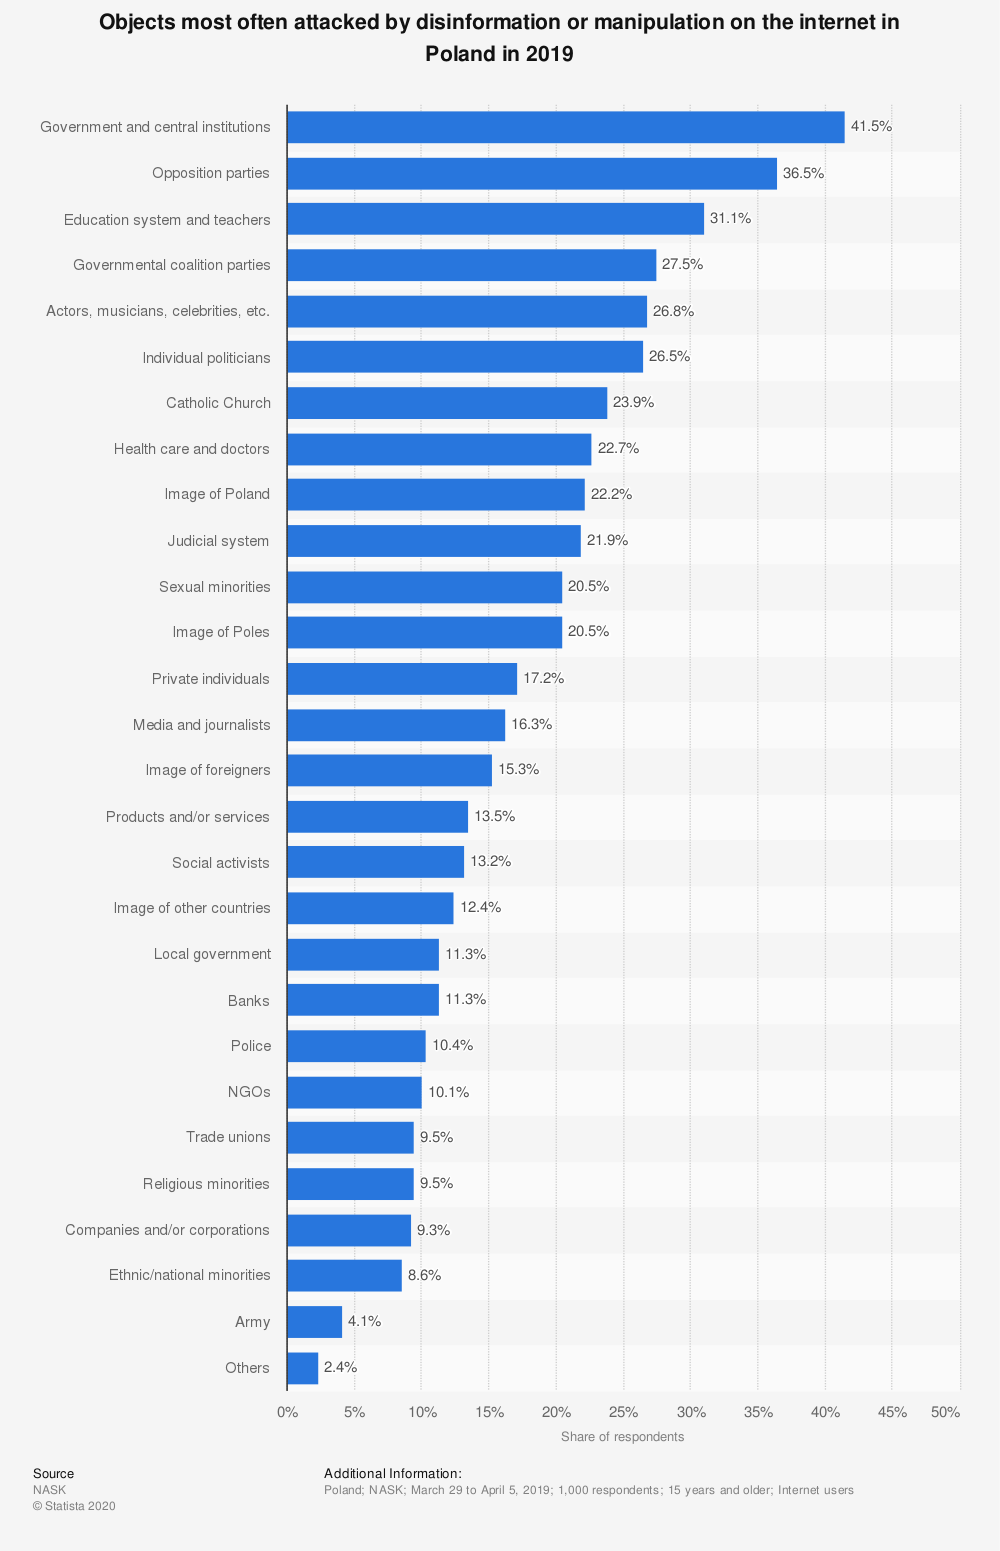 Statistic: Objects most often attacked by disinformation or manipulation on the internet in Poland in 2019 | Statista